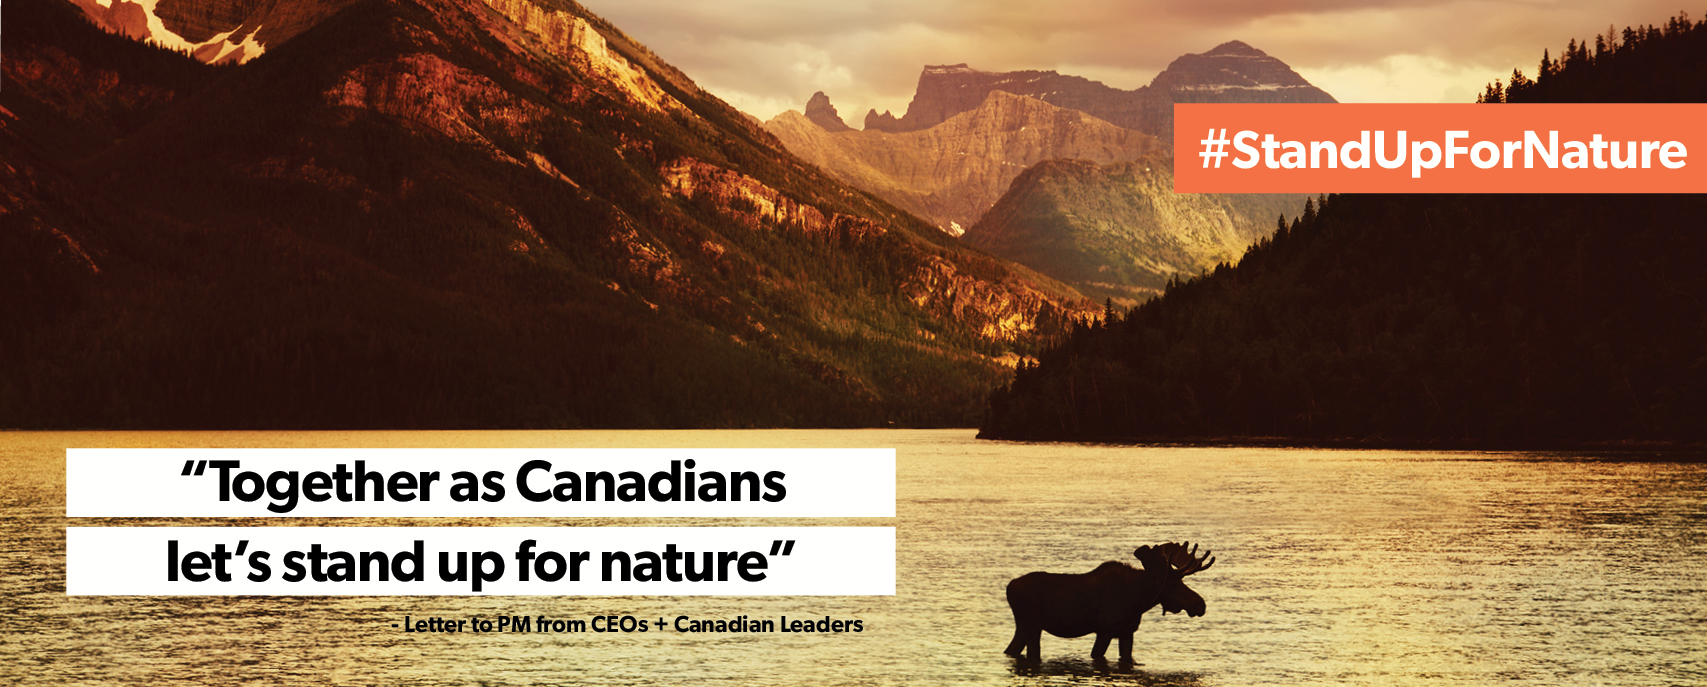 Together as Canadians, let's stand up for nature.